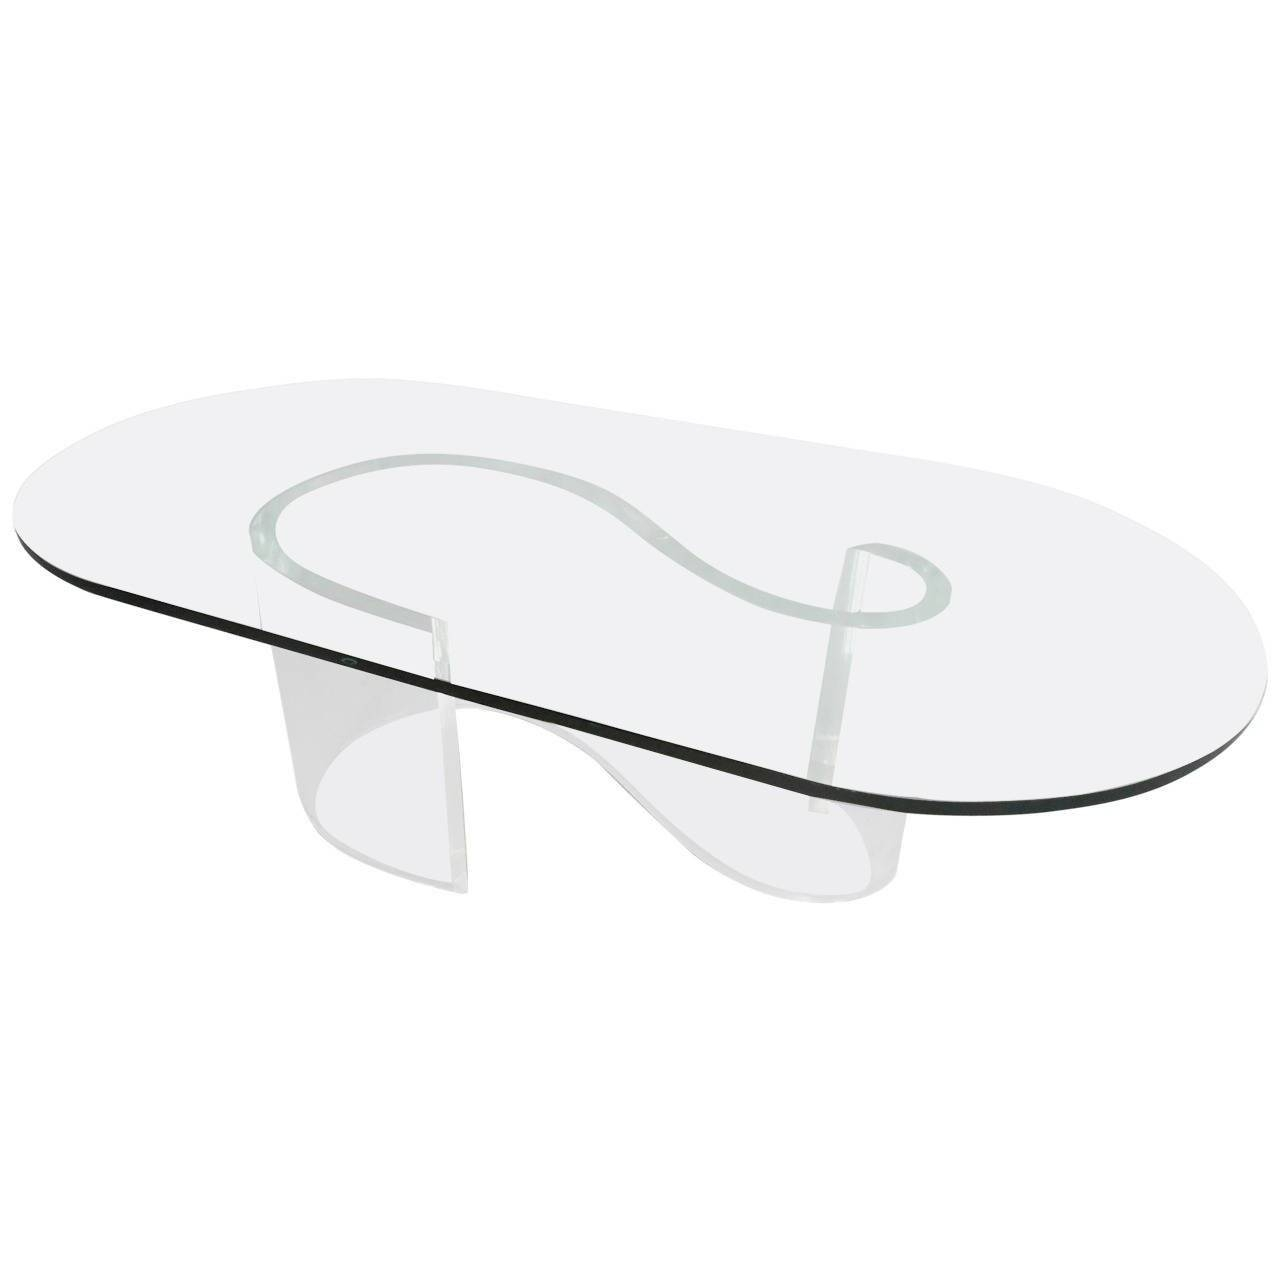 Mid-Century Modern S-Shape Lucite Coffee Table With Beveled Glass regarding Oval Shaped Coffee Tables (Image 16 of 30)